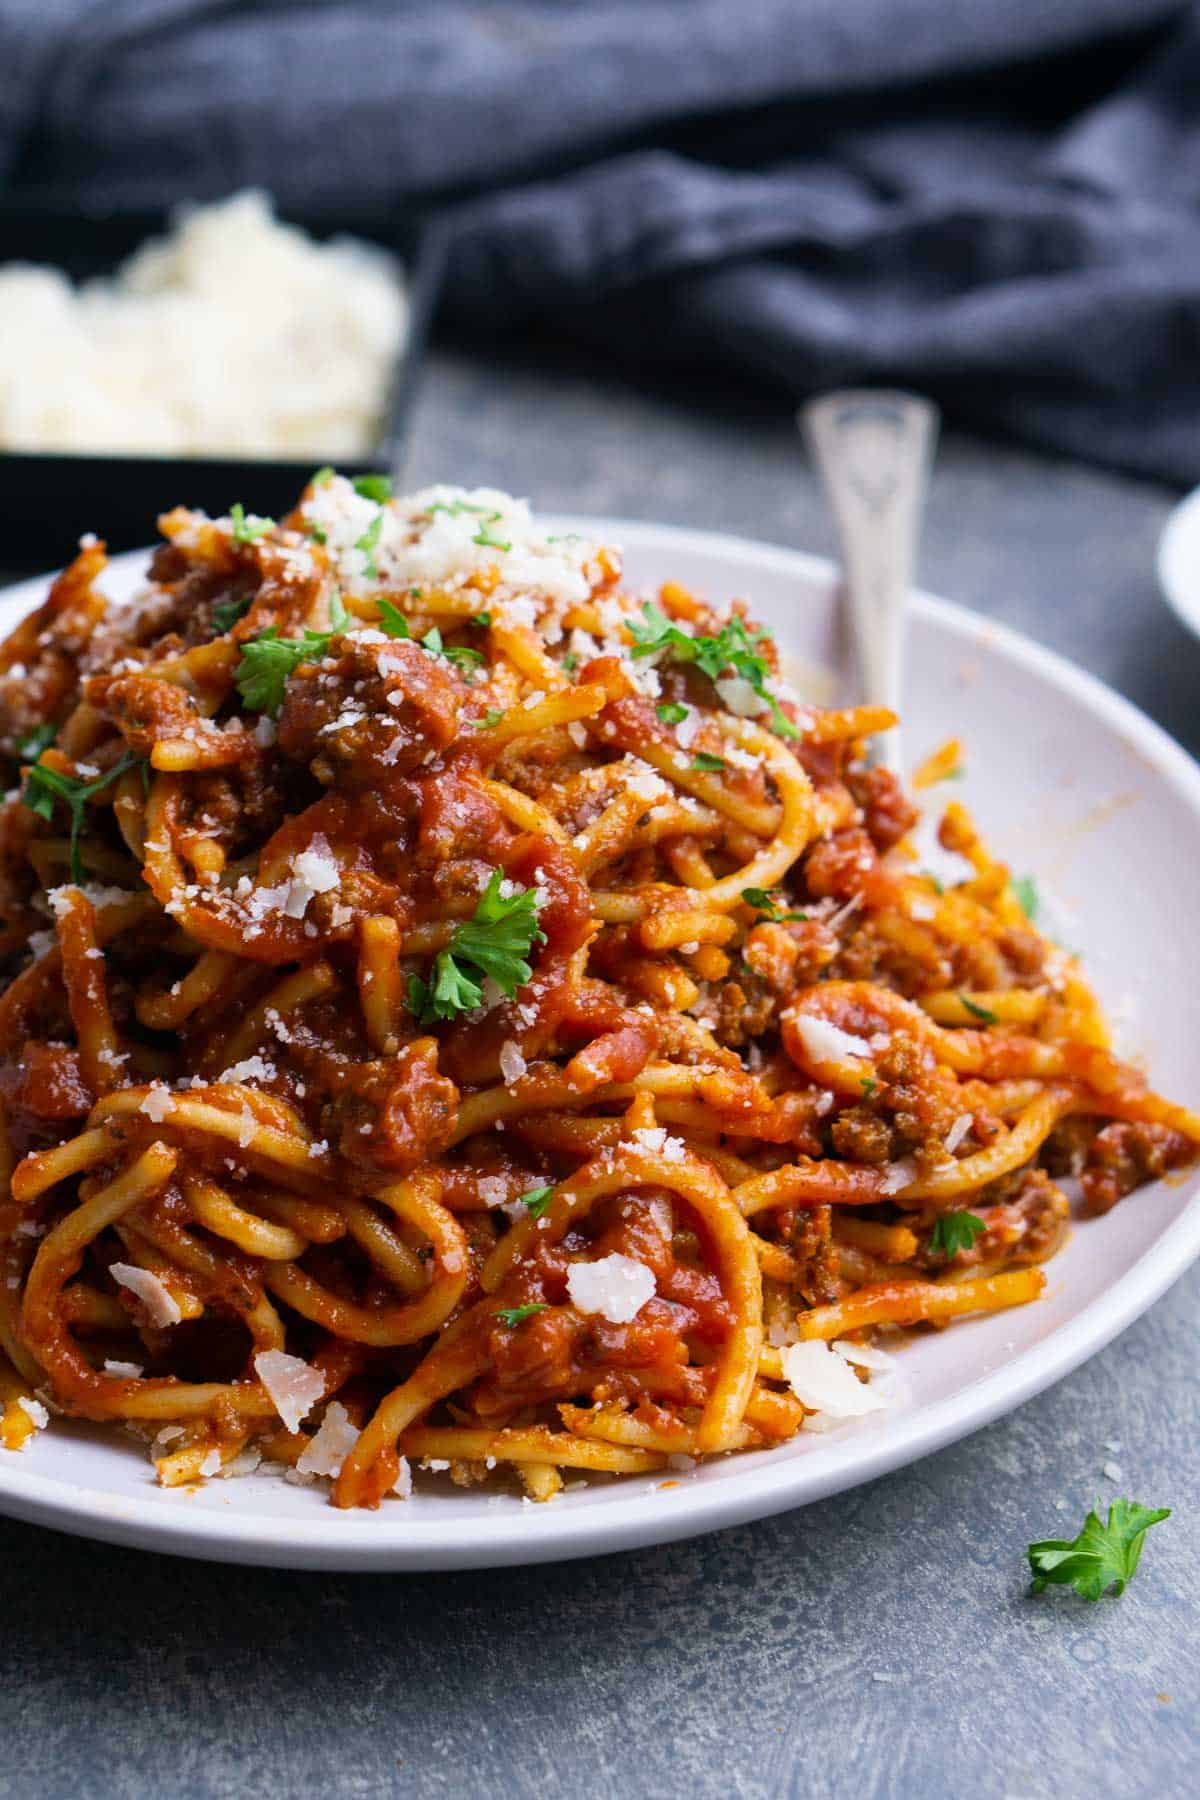 spaghetti and meat sauce on white plate with fork next to parmesan cheese